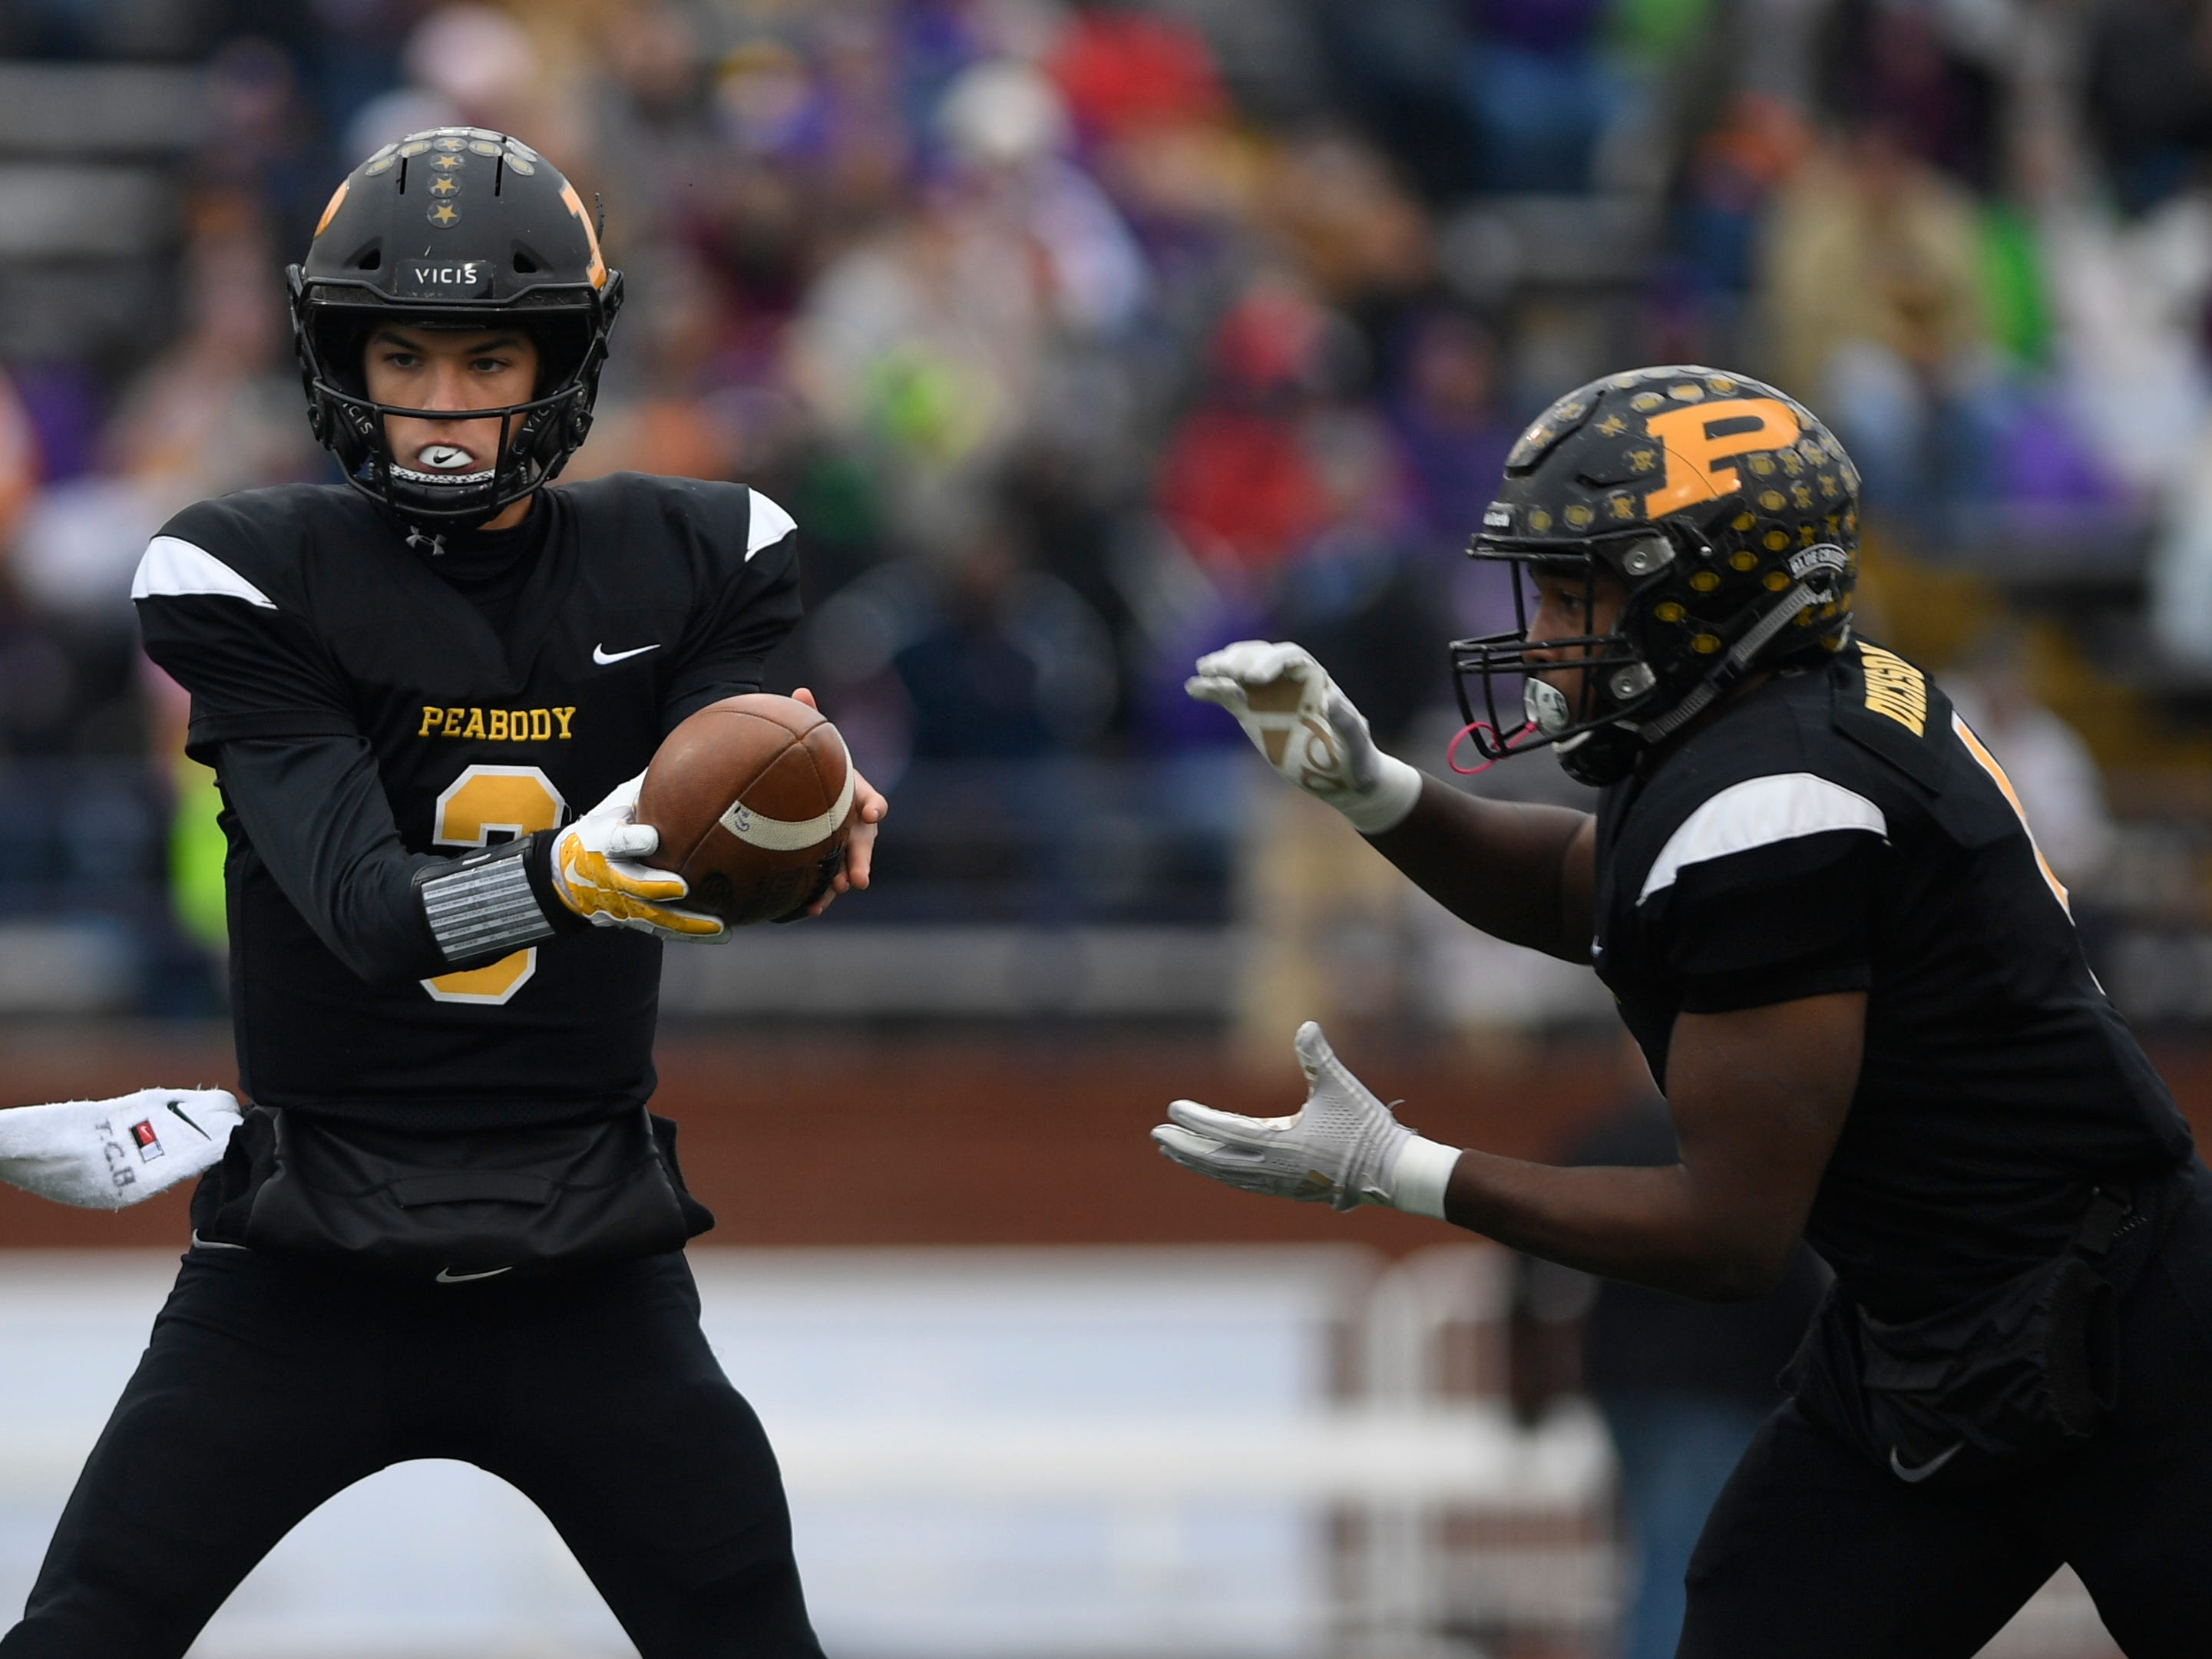 Peabody quarterback Cooper Baugus hands off to running back Jarel Dickson in the first quarter during the Class 2A BlueCross Bowl state championship at Tennessee Tech's Tucker Stadium in Cookeville, Tenn., on Thursday, Nov. 29, 2018.